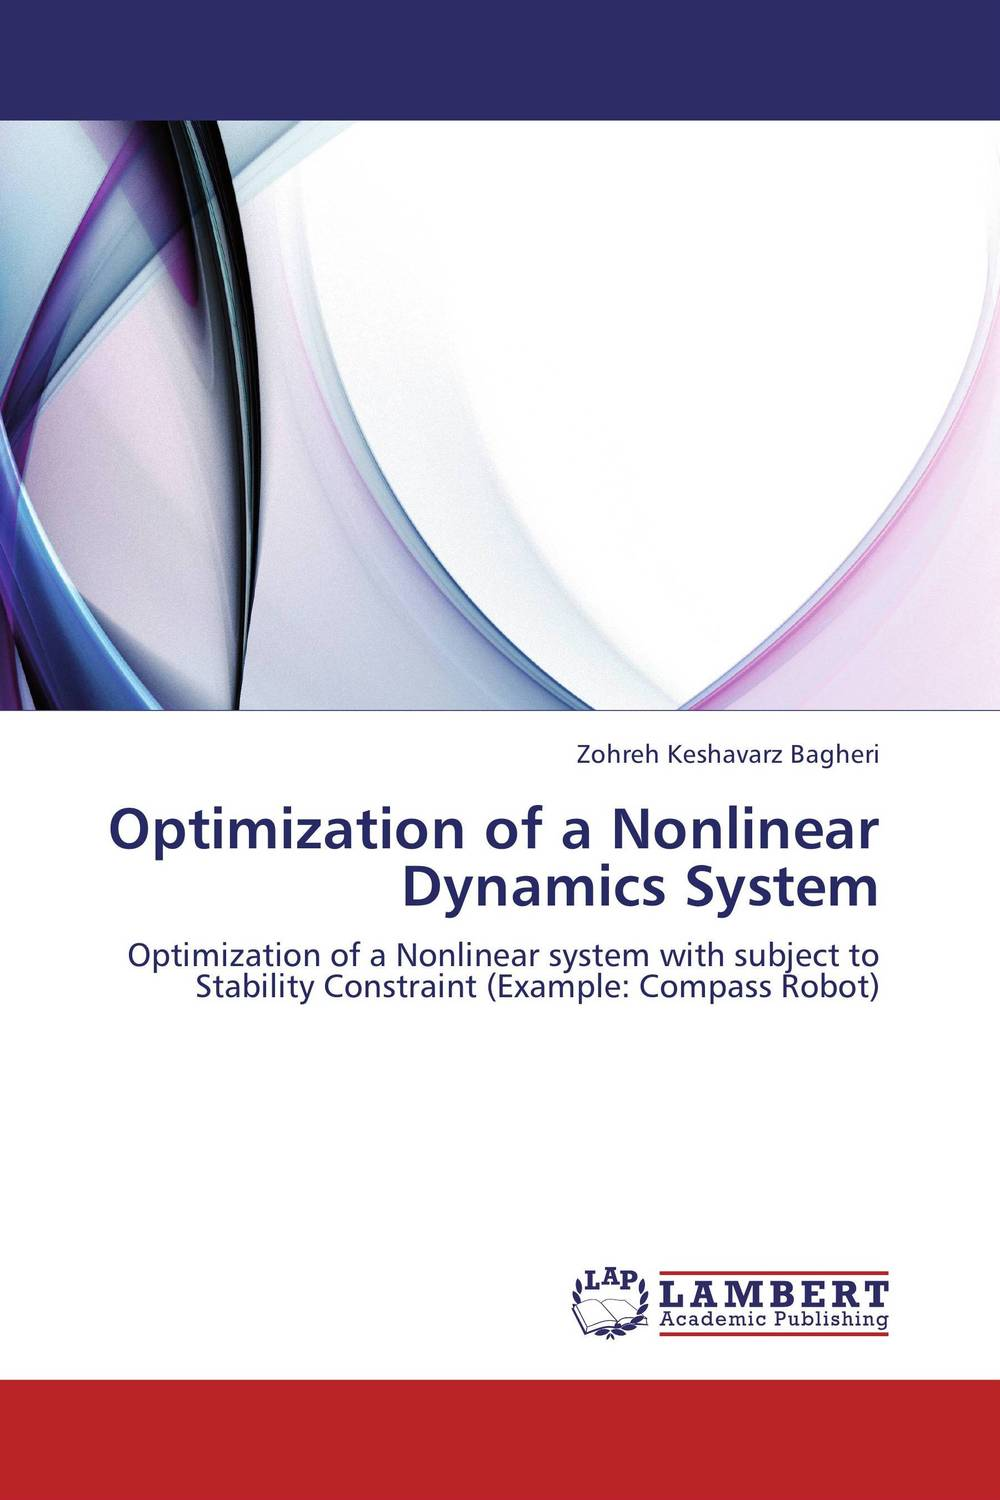 Optimization of a Nonlinear Dynamics System